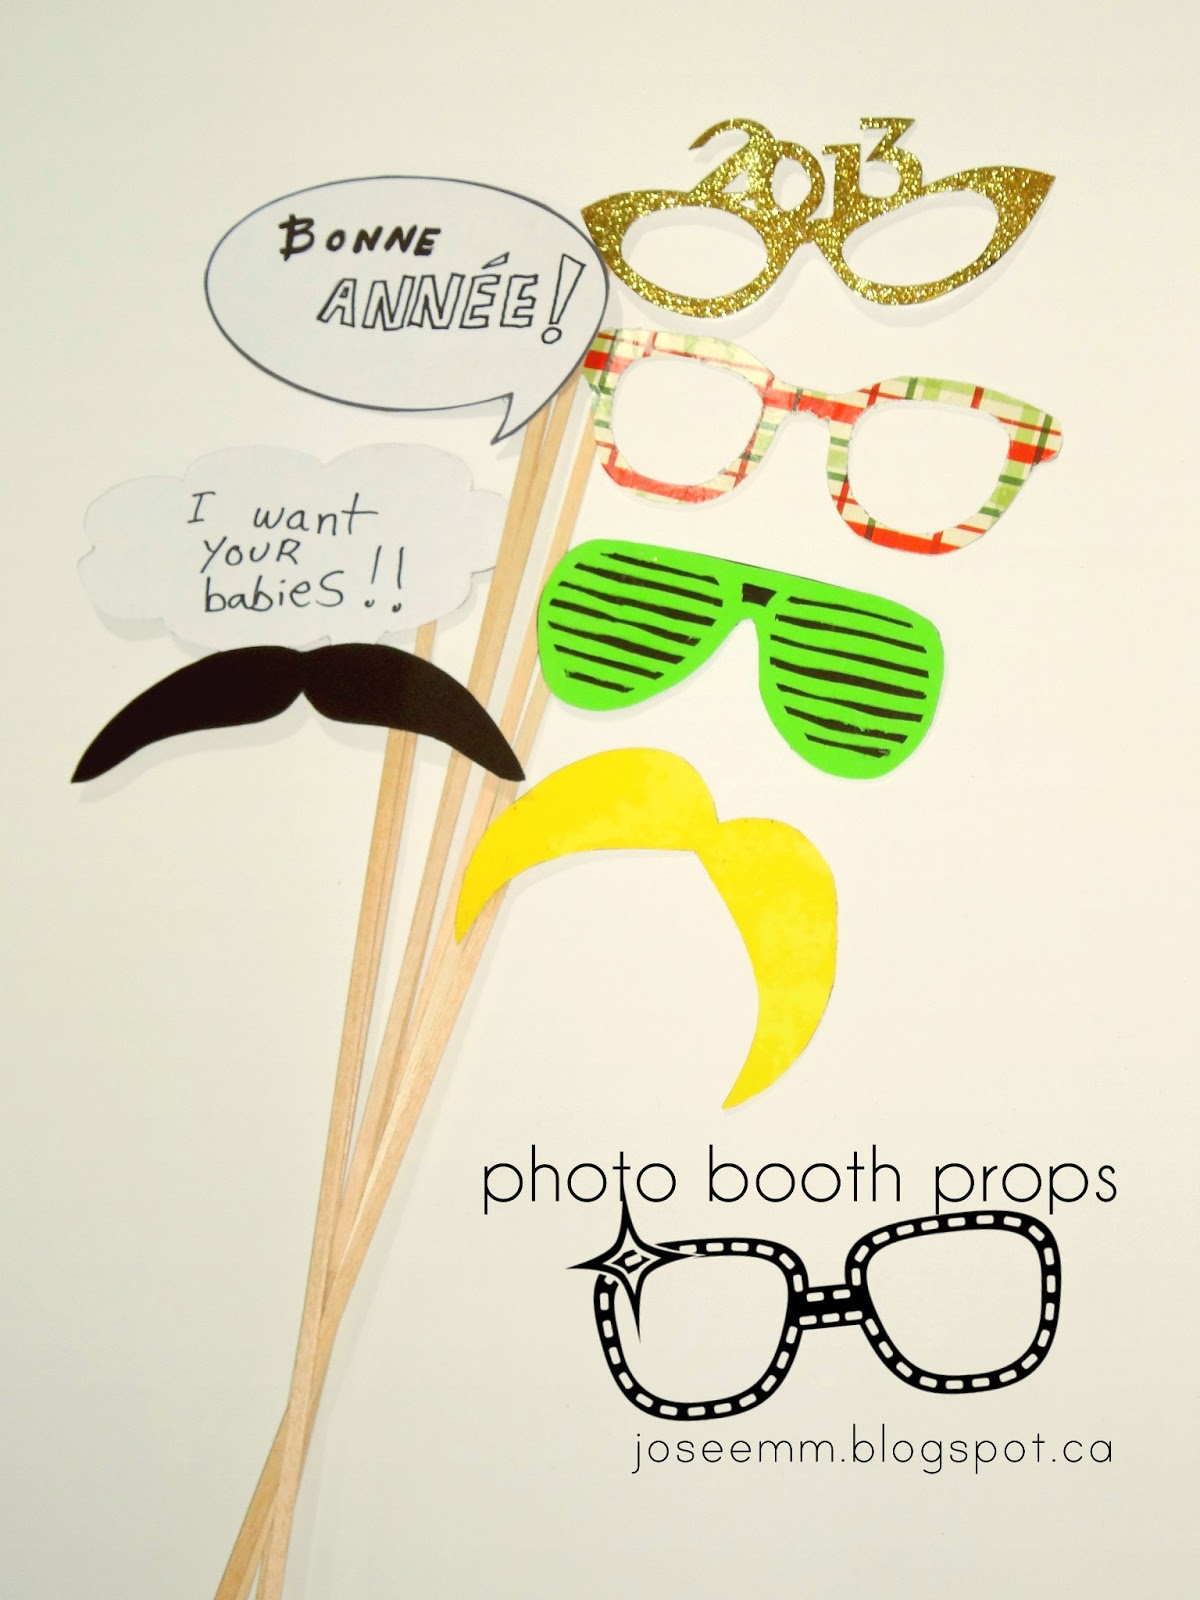 diy free printable photo booth props by joseemm.blogspot.ca